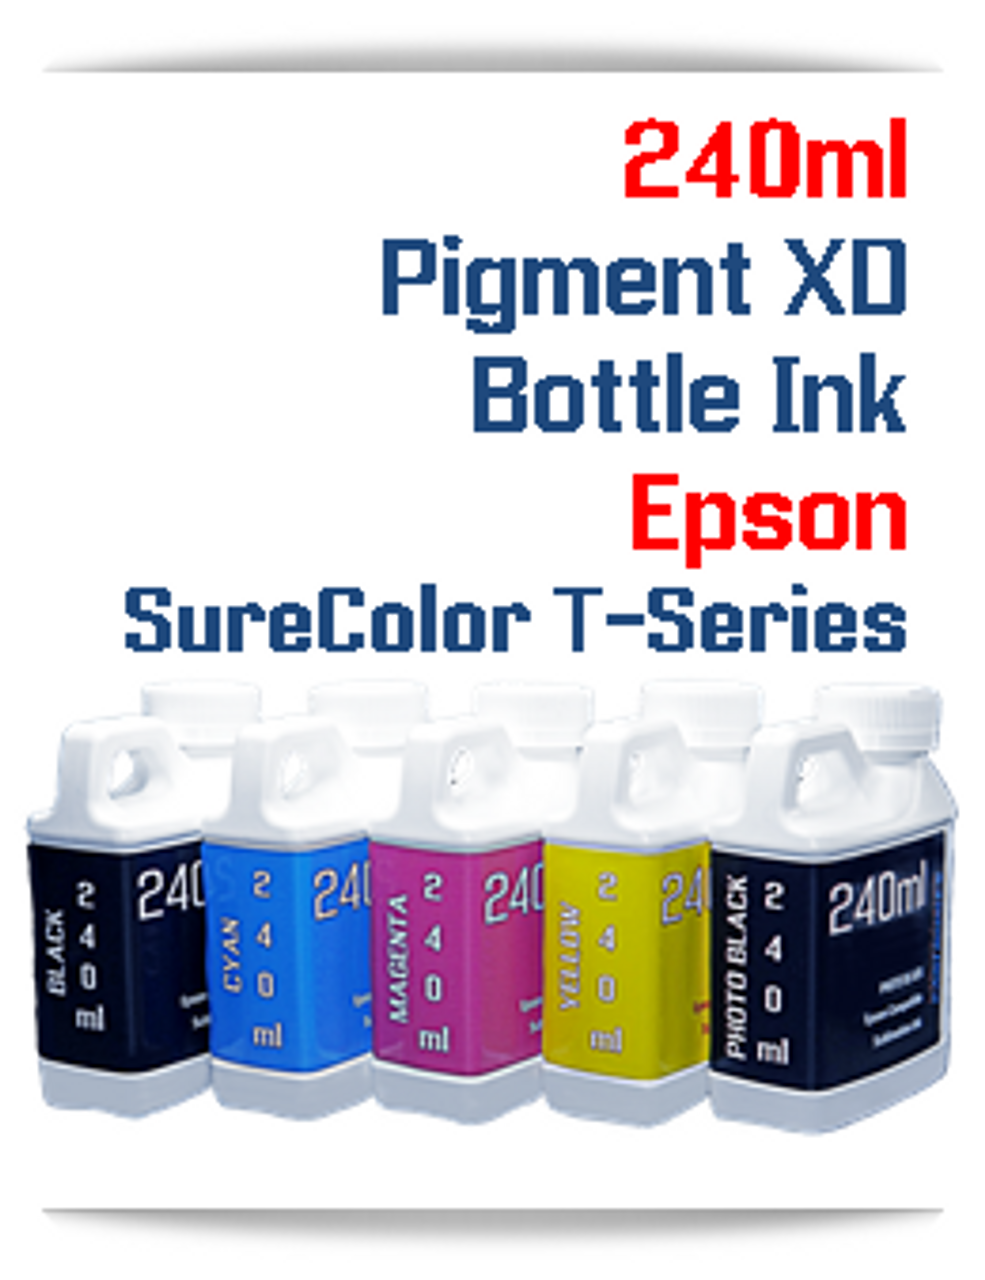 Epson SureColor T-Series Pigment XD Ink 240ml bottles